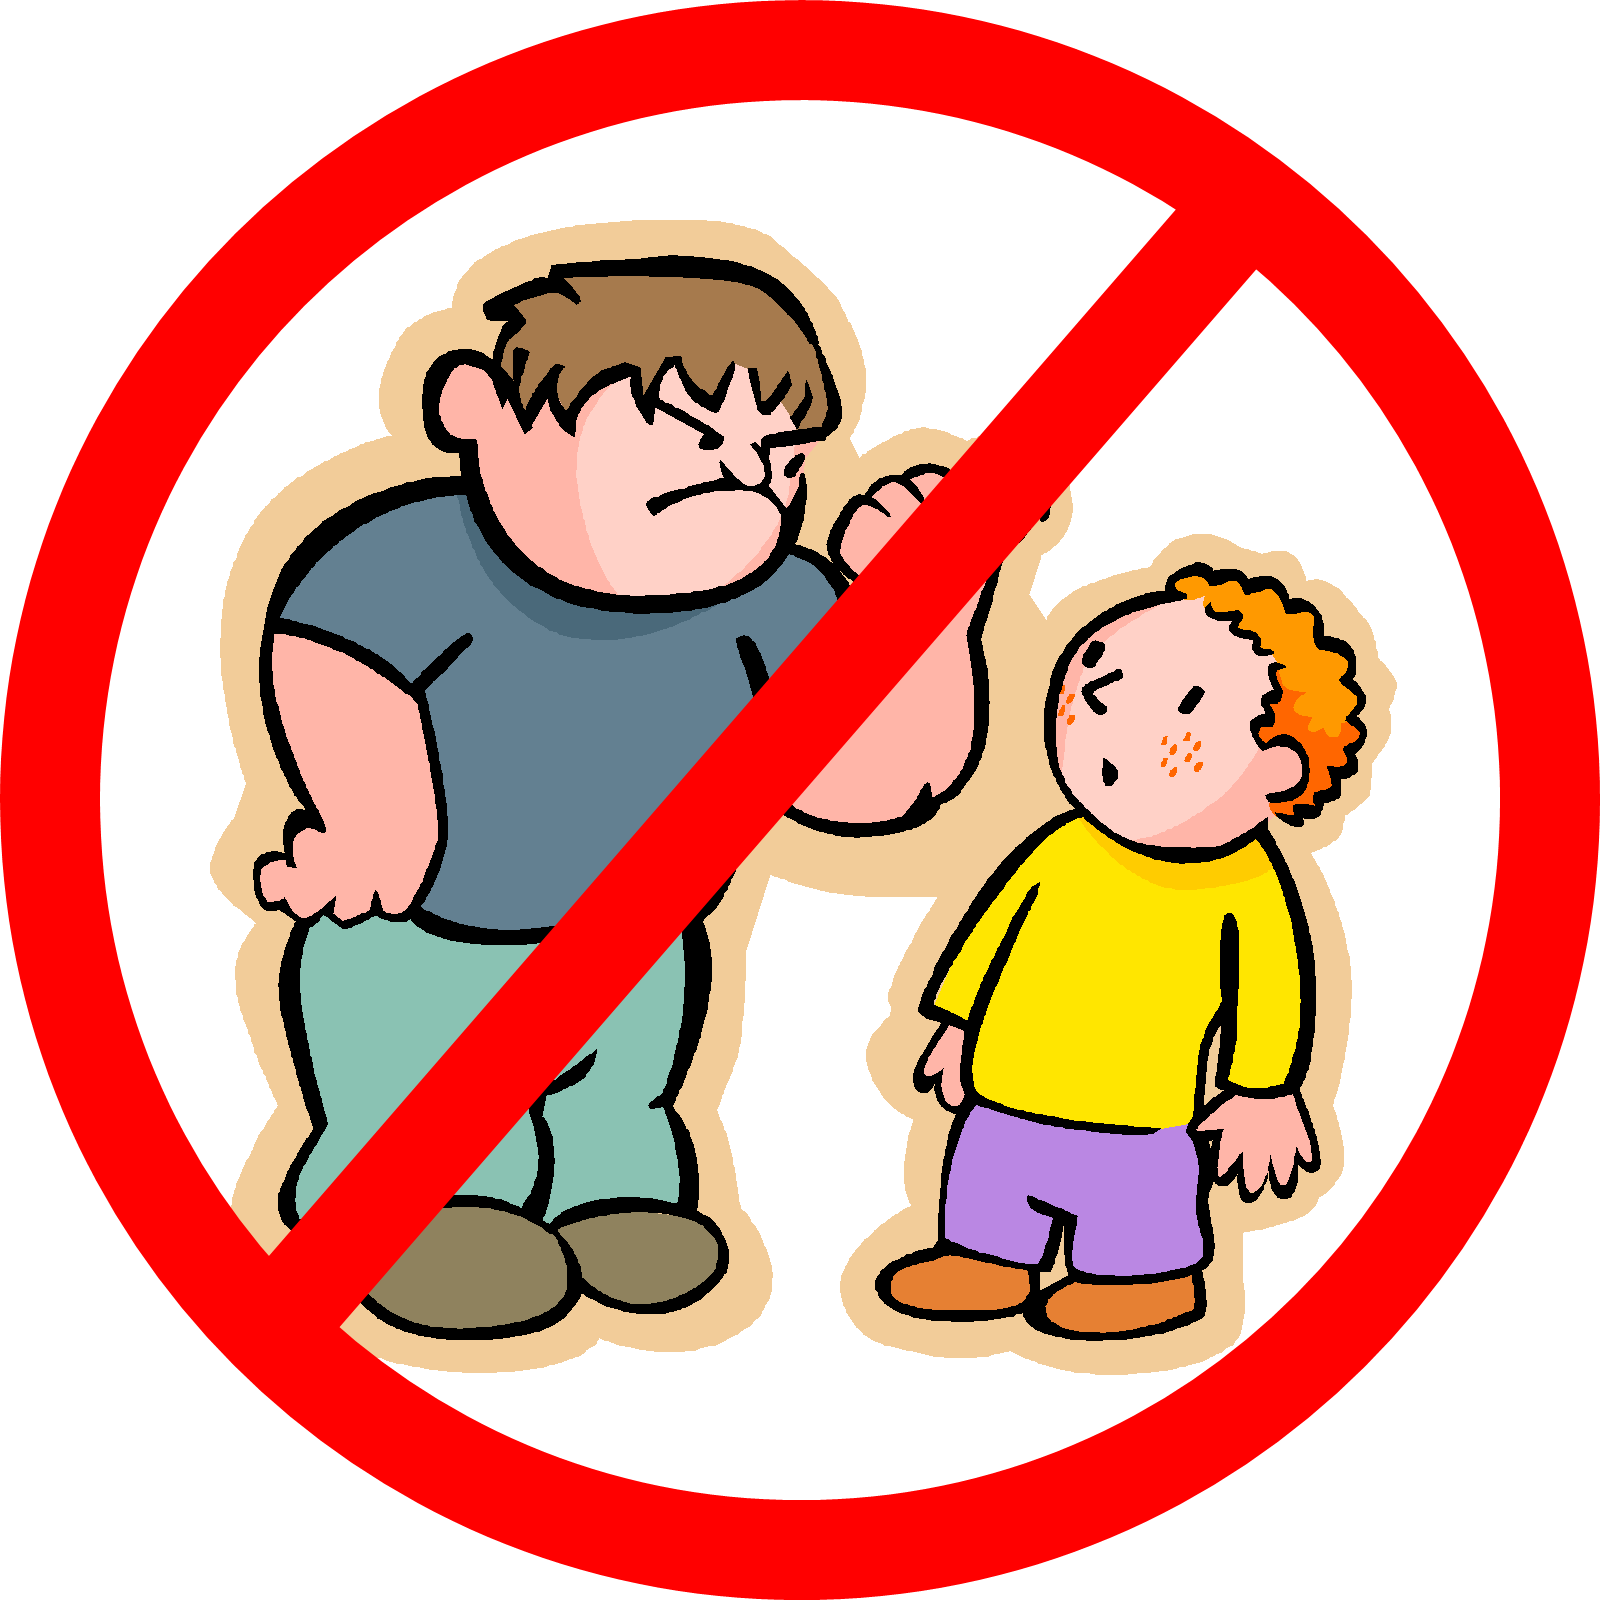 Bully clipart bullying prevention. Maplewoodian com school district